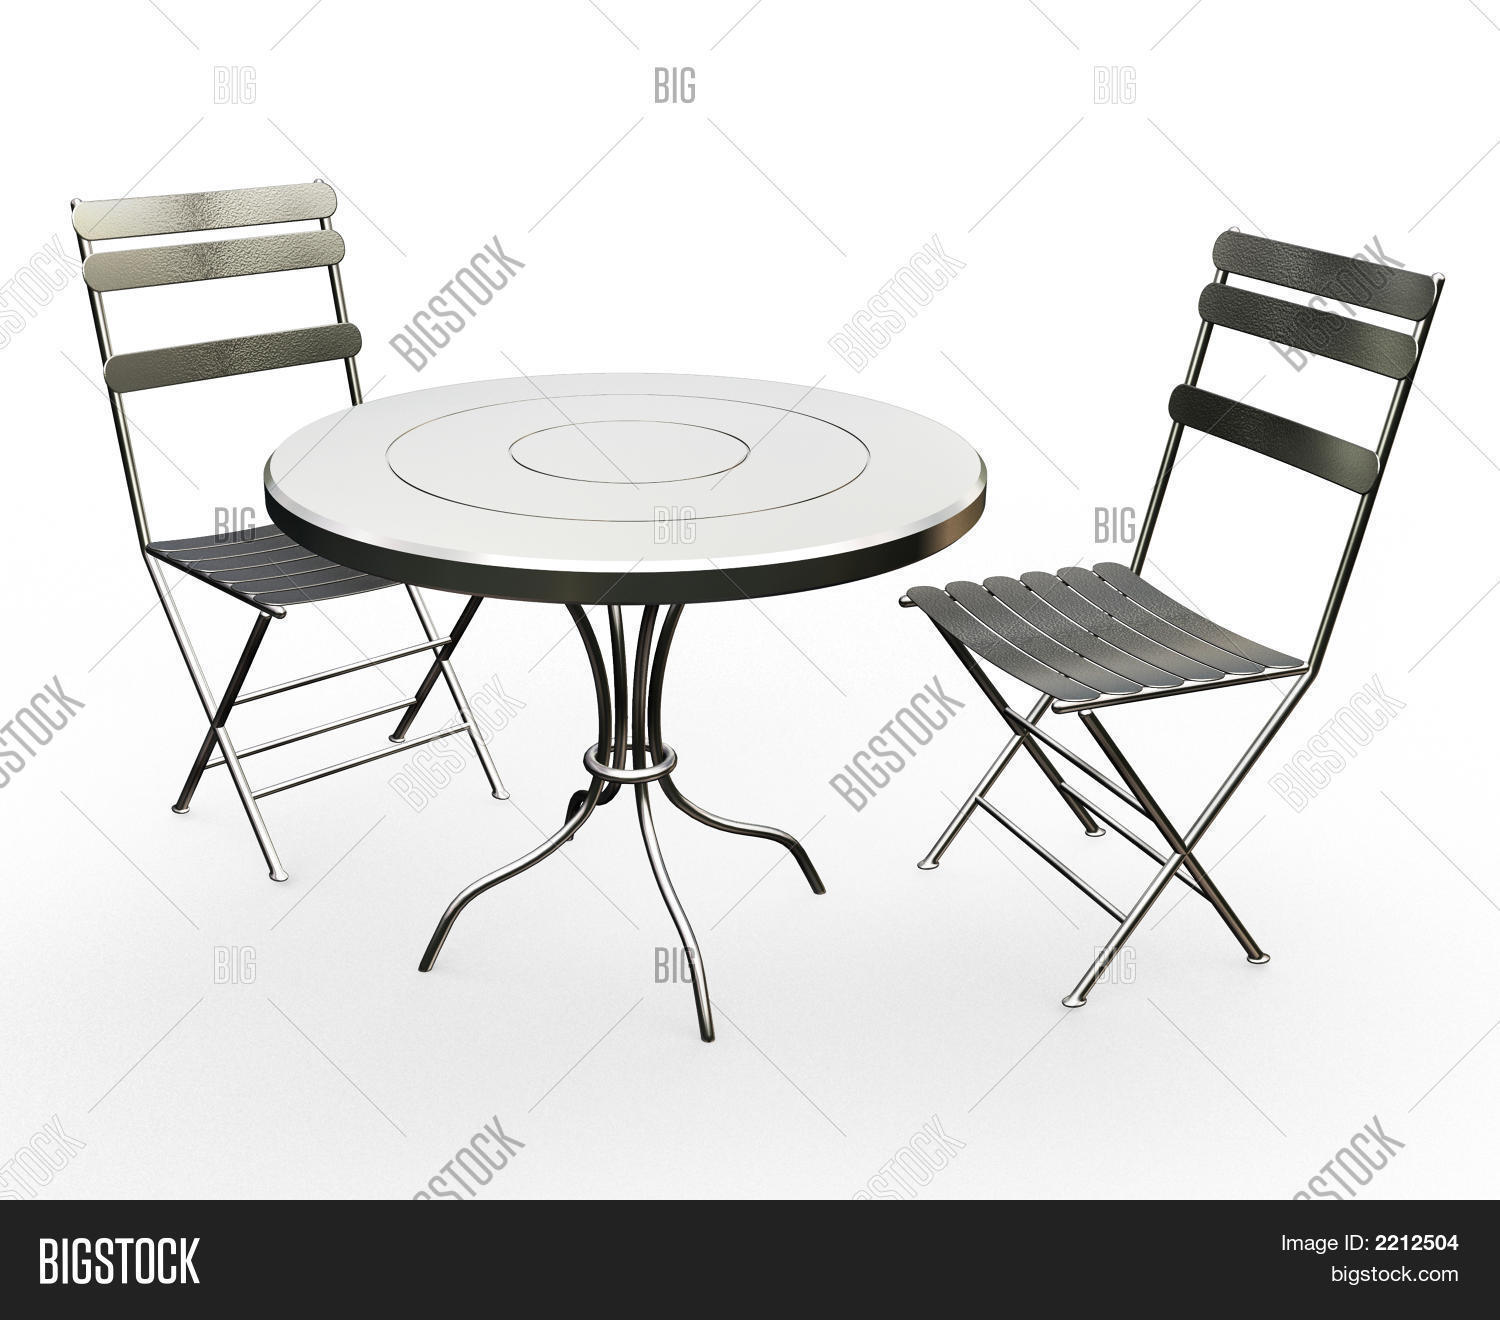 Cafe Table Chairs Image &